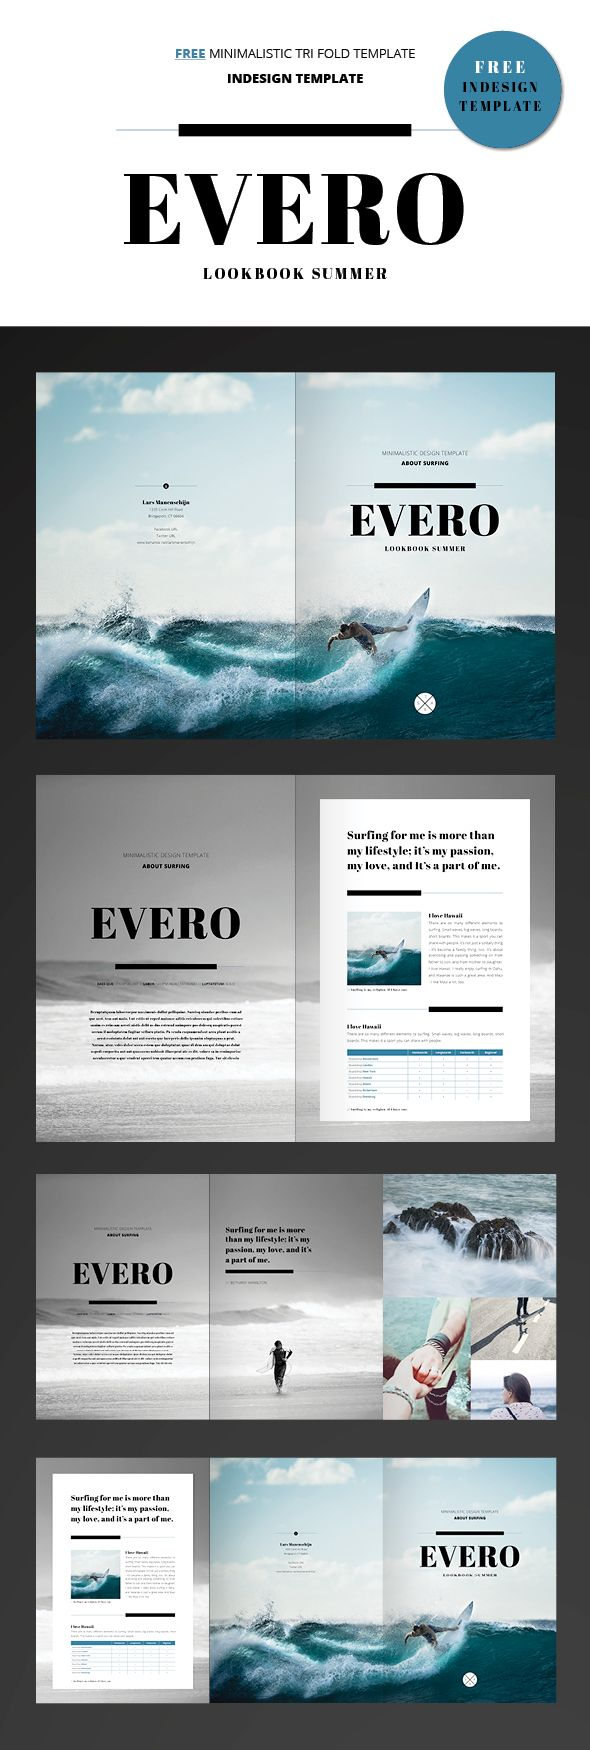 Free InDesign Template - Trifold Brochure on Behance